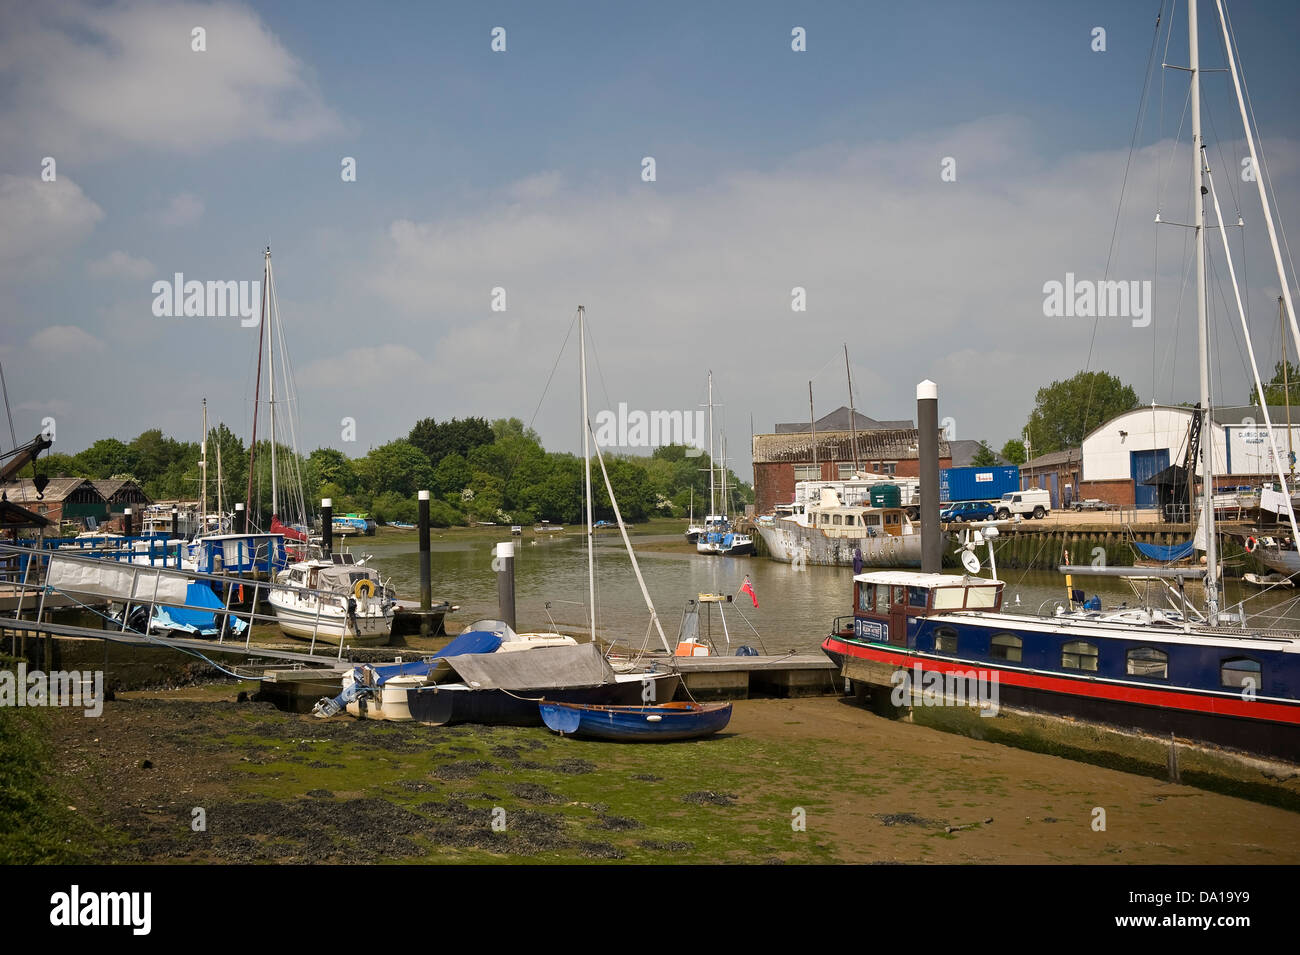 Boats tied up on the River Medina, Newport, Isle of Wight, UK - Stock Image